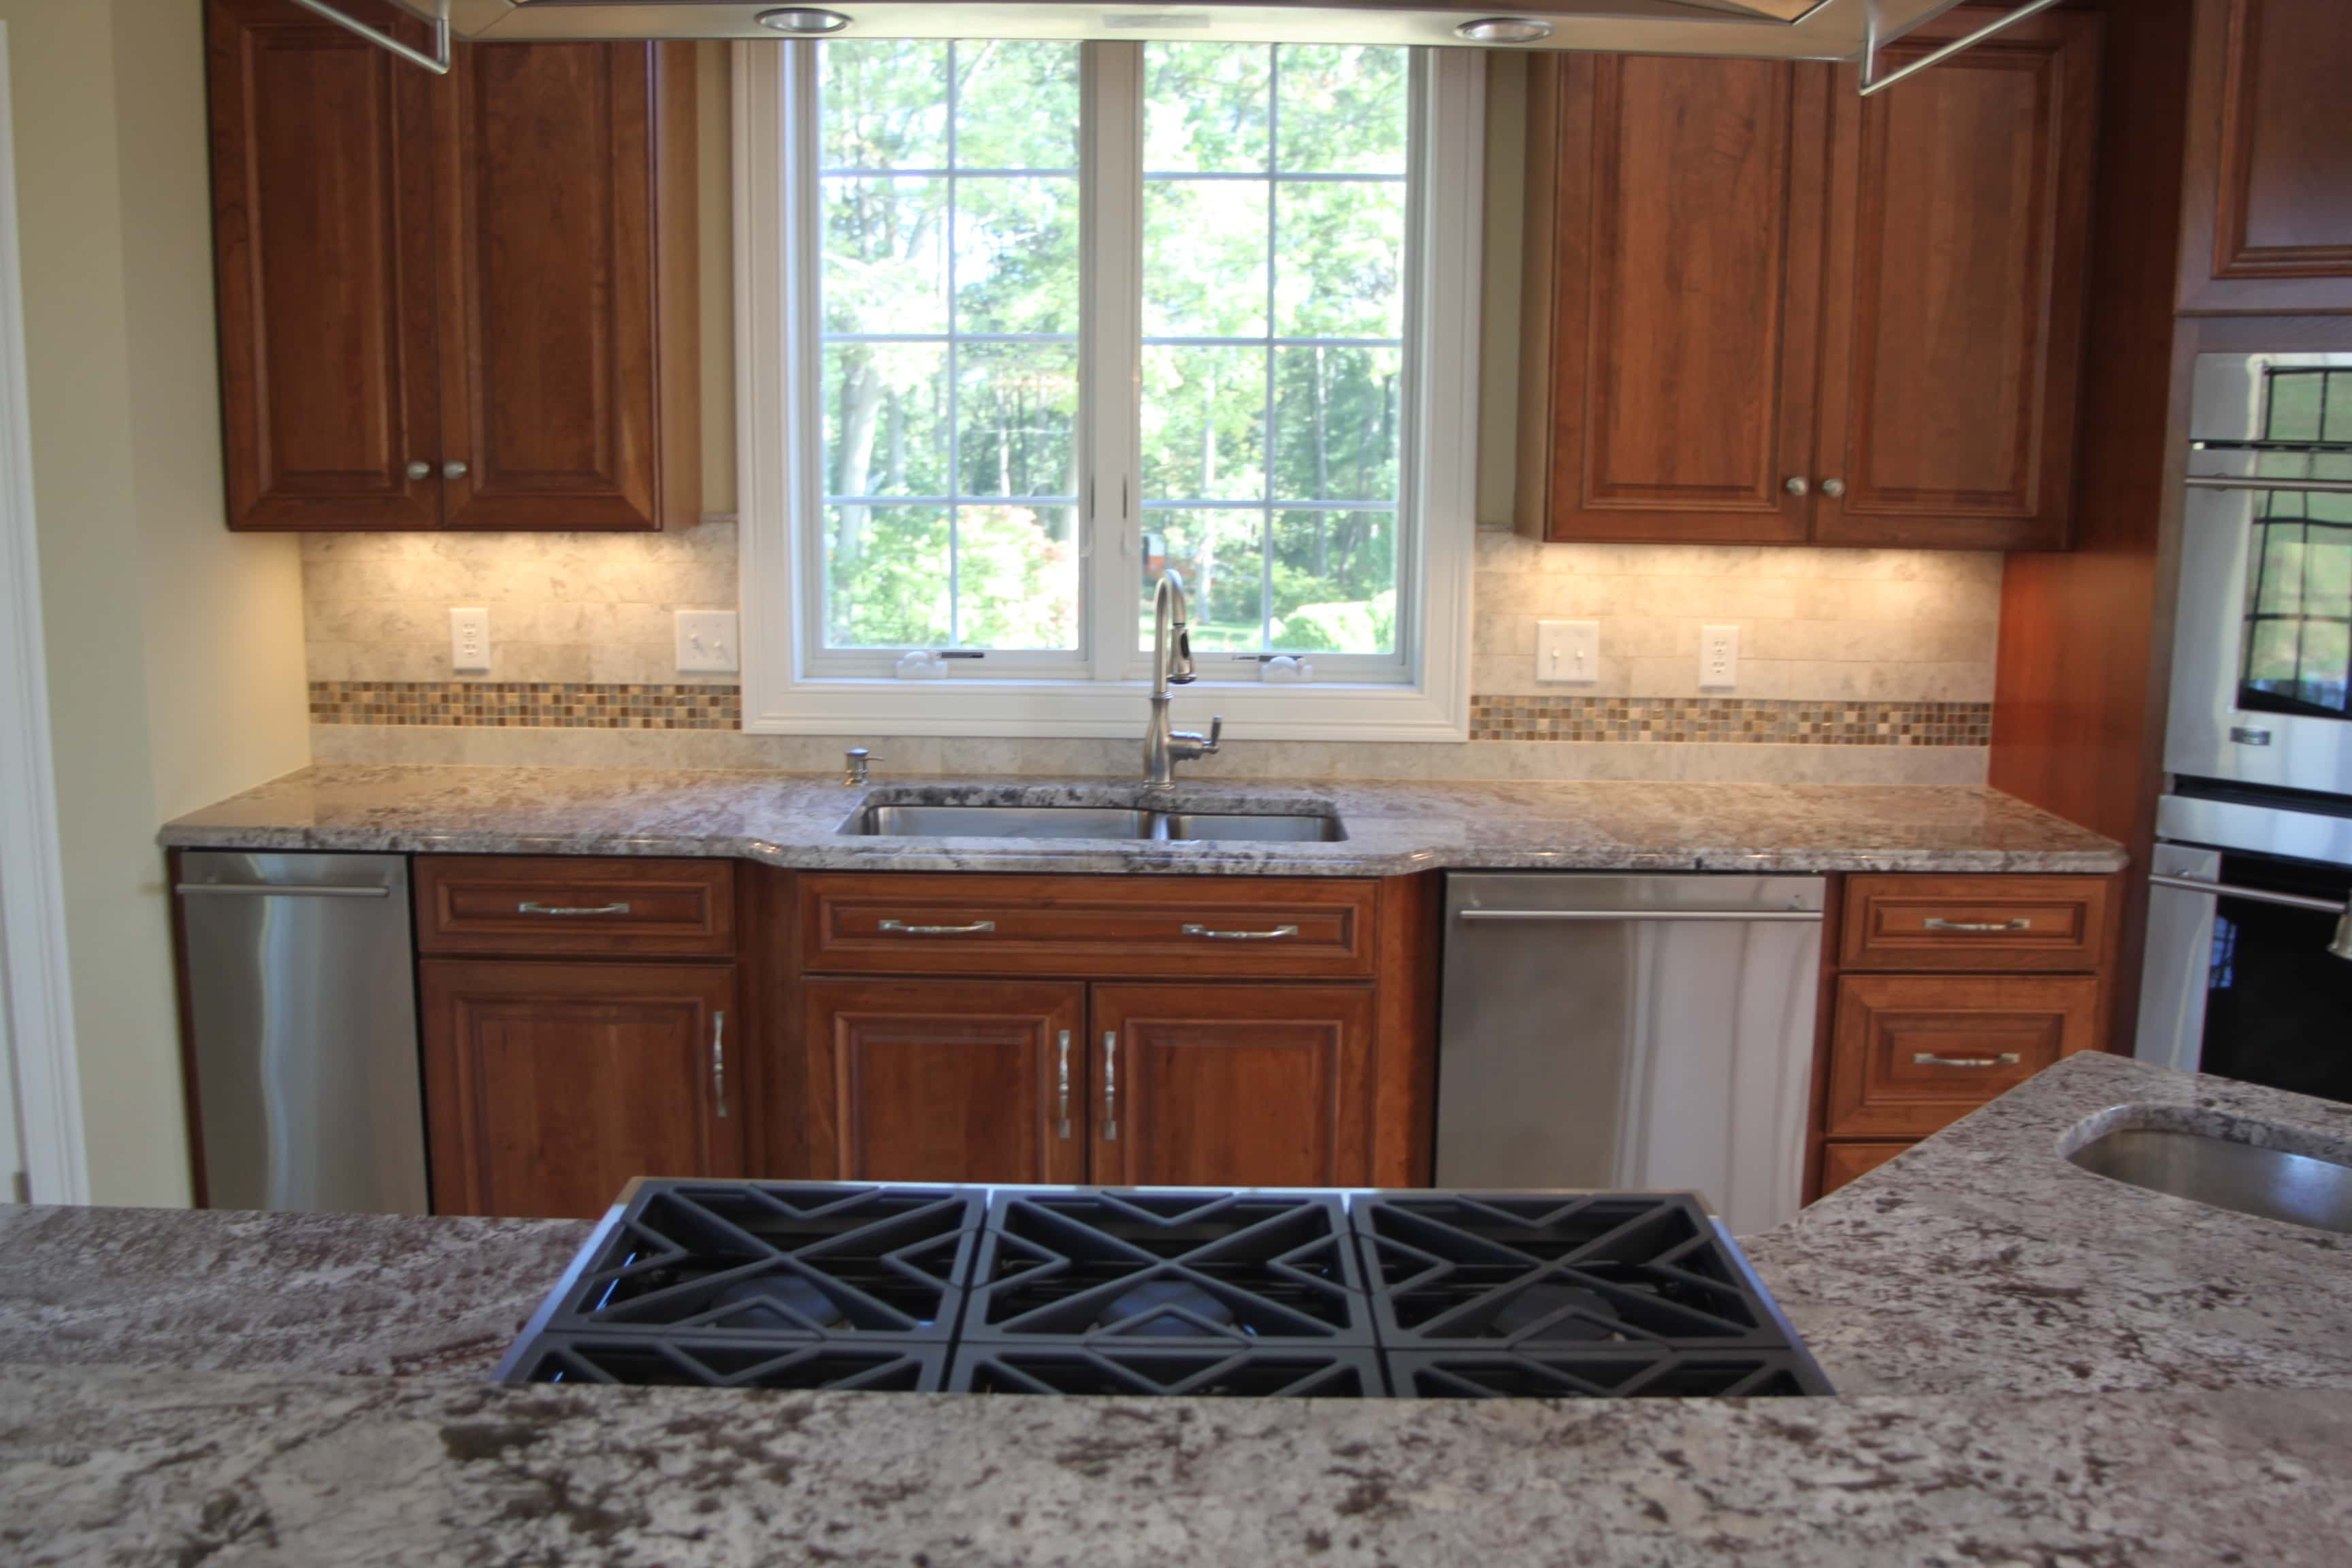 Kitchen Floor Tiles Pictures Should Your Flooring Match Your Kitchen Cabinets Or Countertops